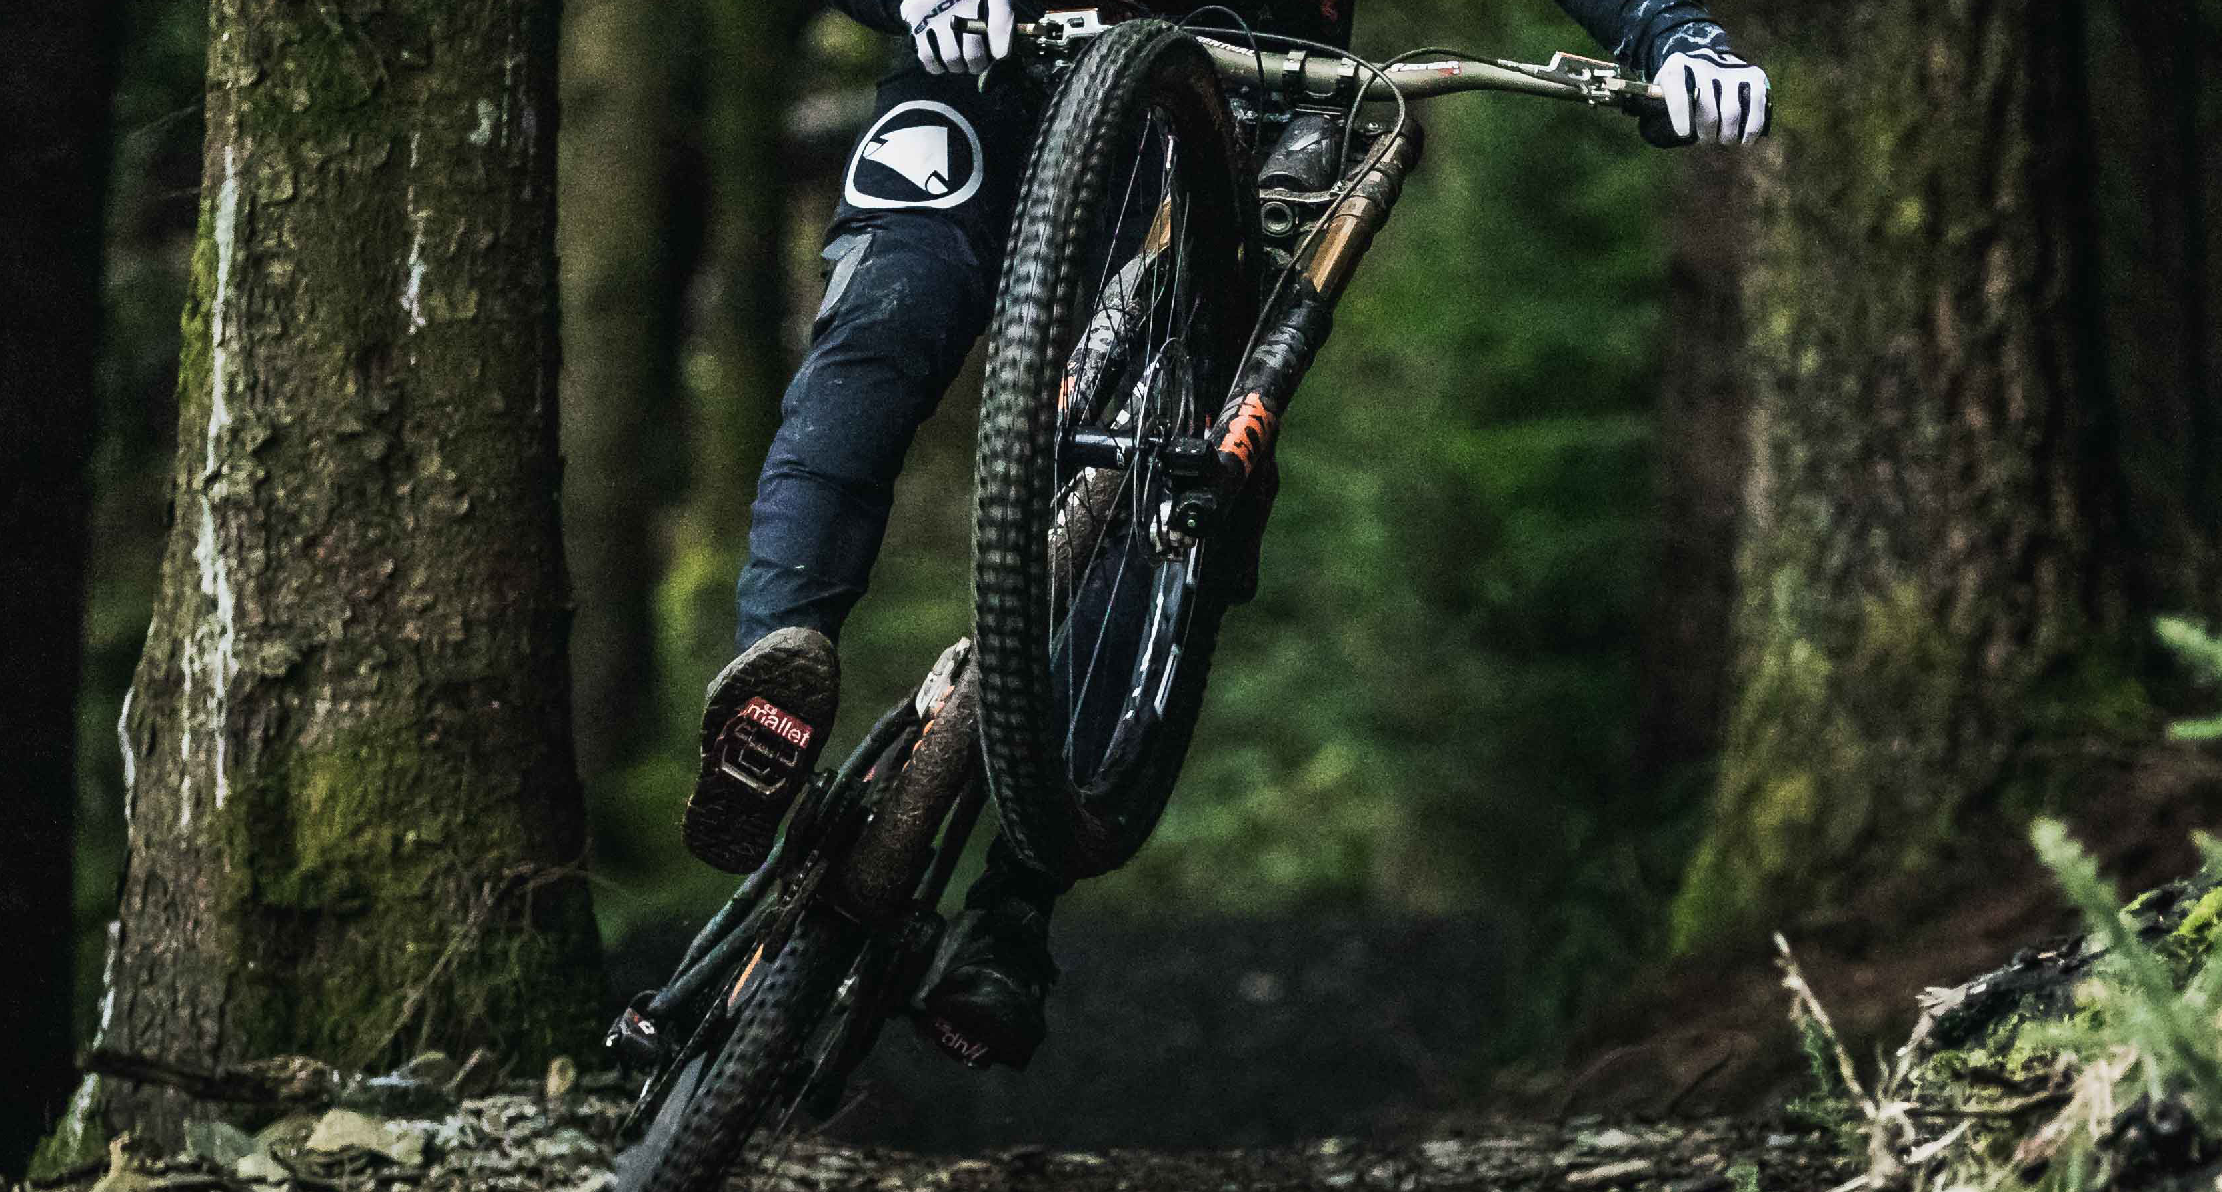 4fe27ae3b2b Athertons racing on 3D-printed Atherton Bikes and backed by Dragons ...